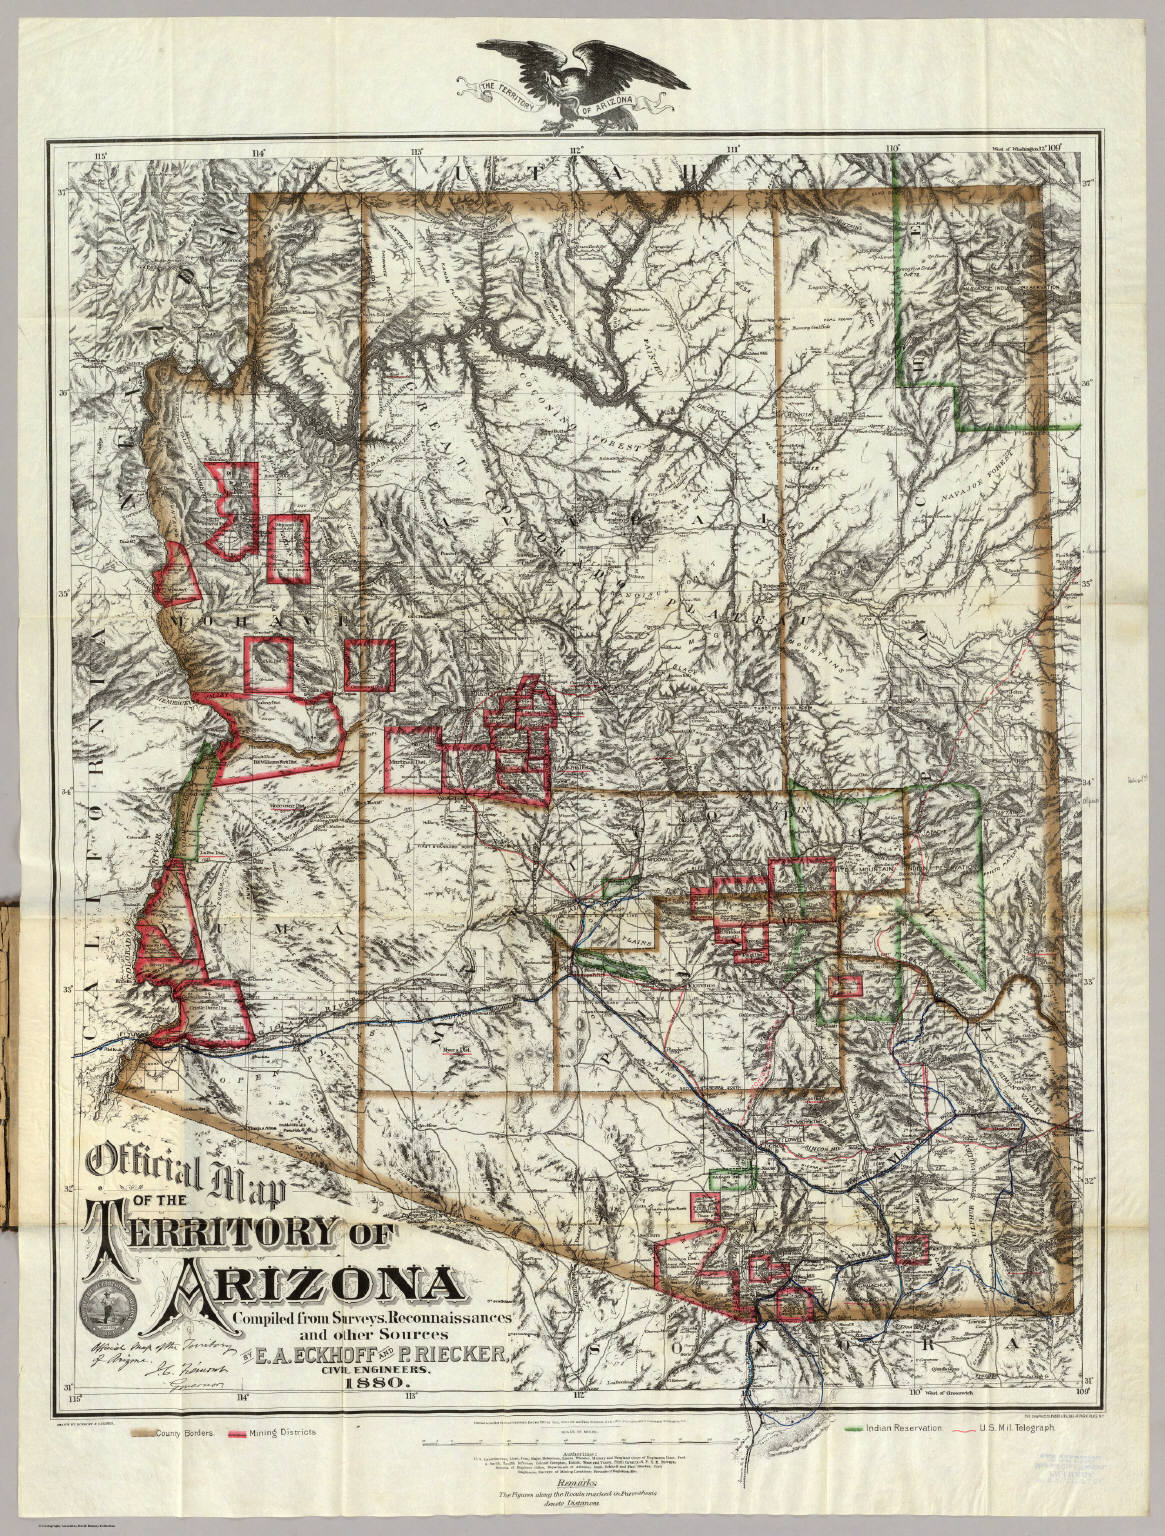 Map Of Arizona 1880.Official Map Of The Territory Of Arizona Eckhoff E A Riecker